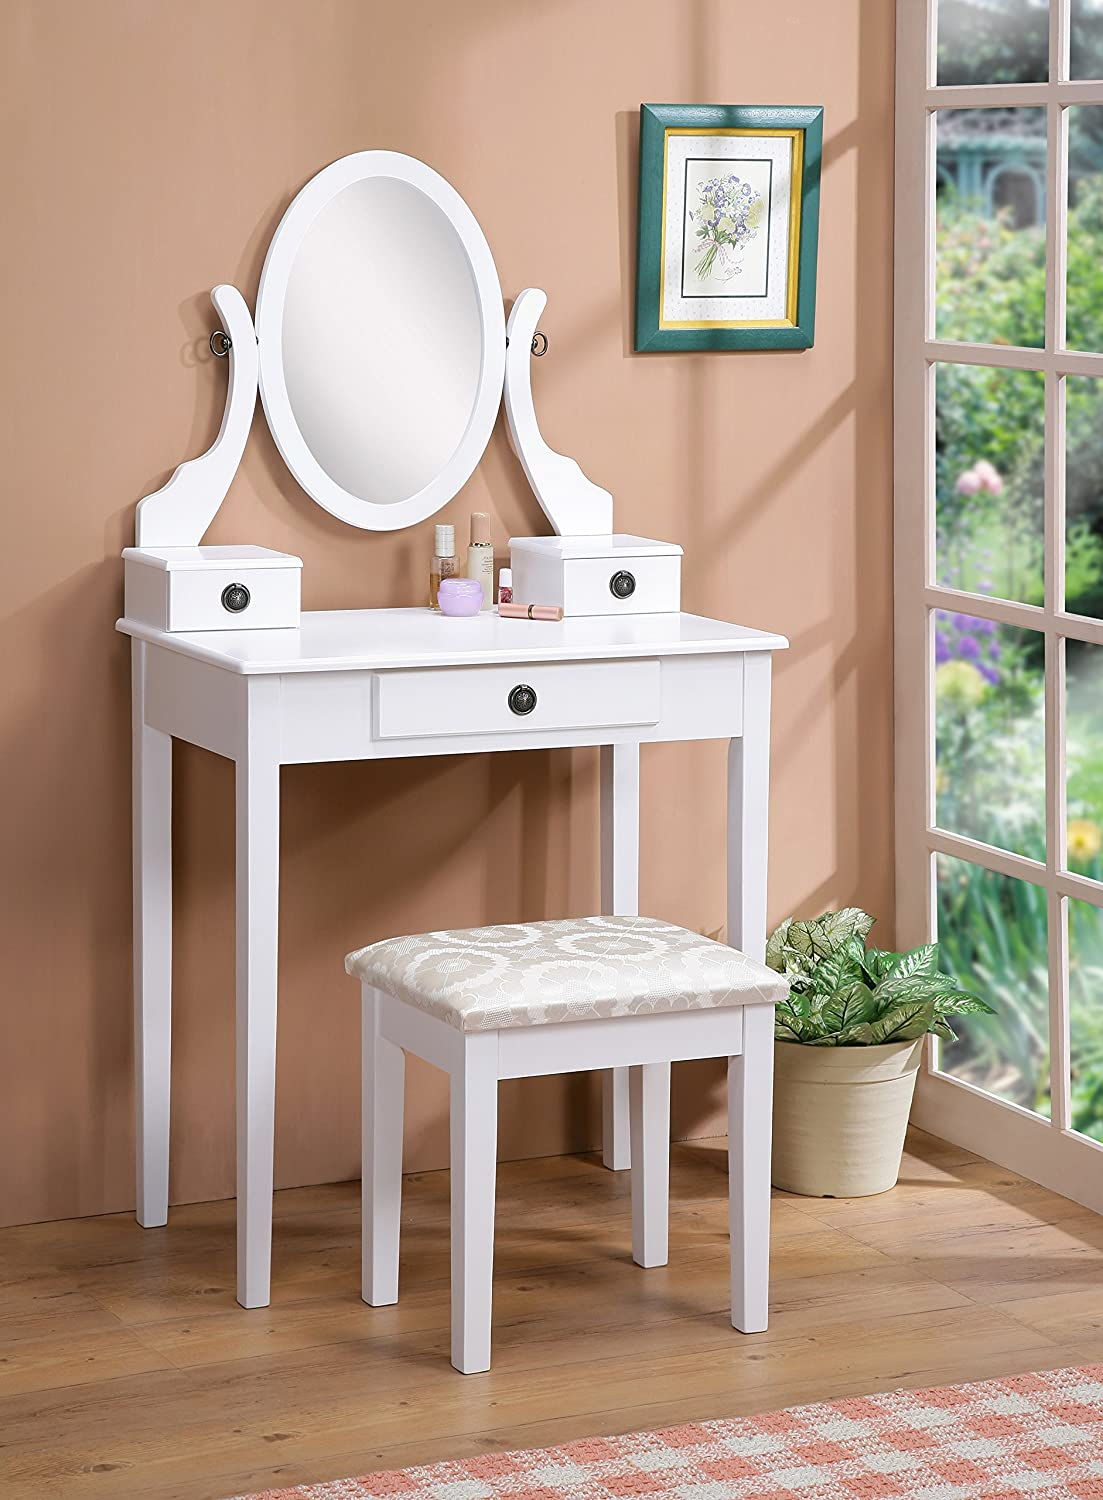 Roundhill Furniture Moniya White Wood Vanity Table and Stool Set